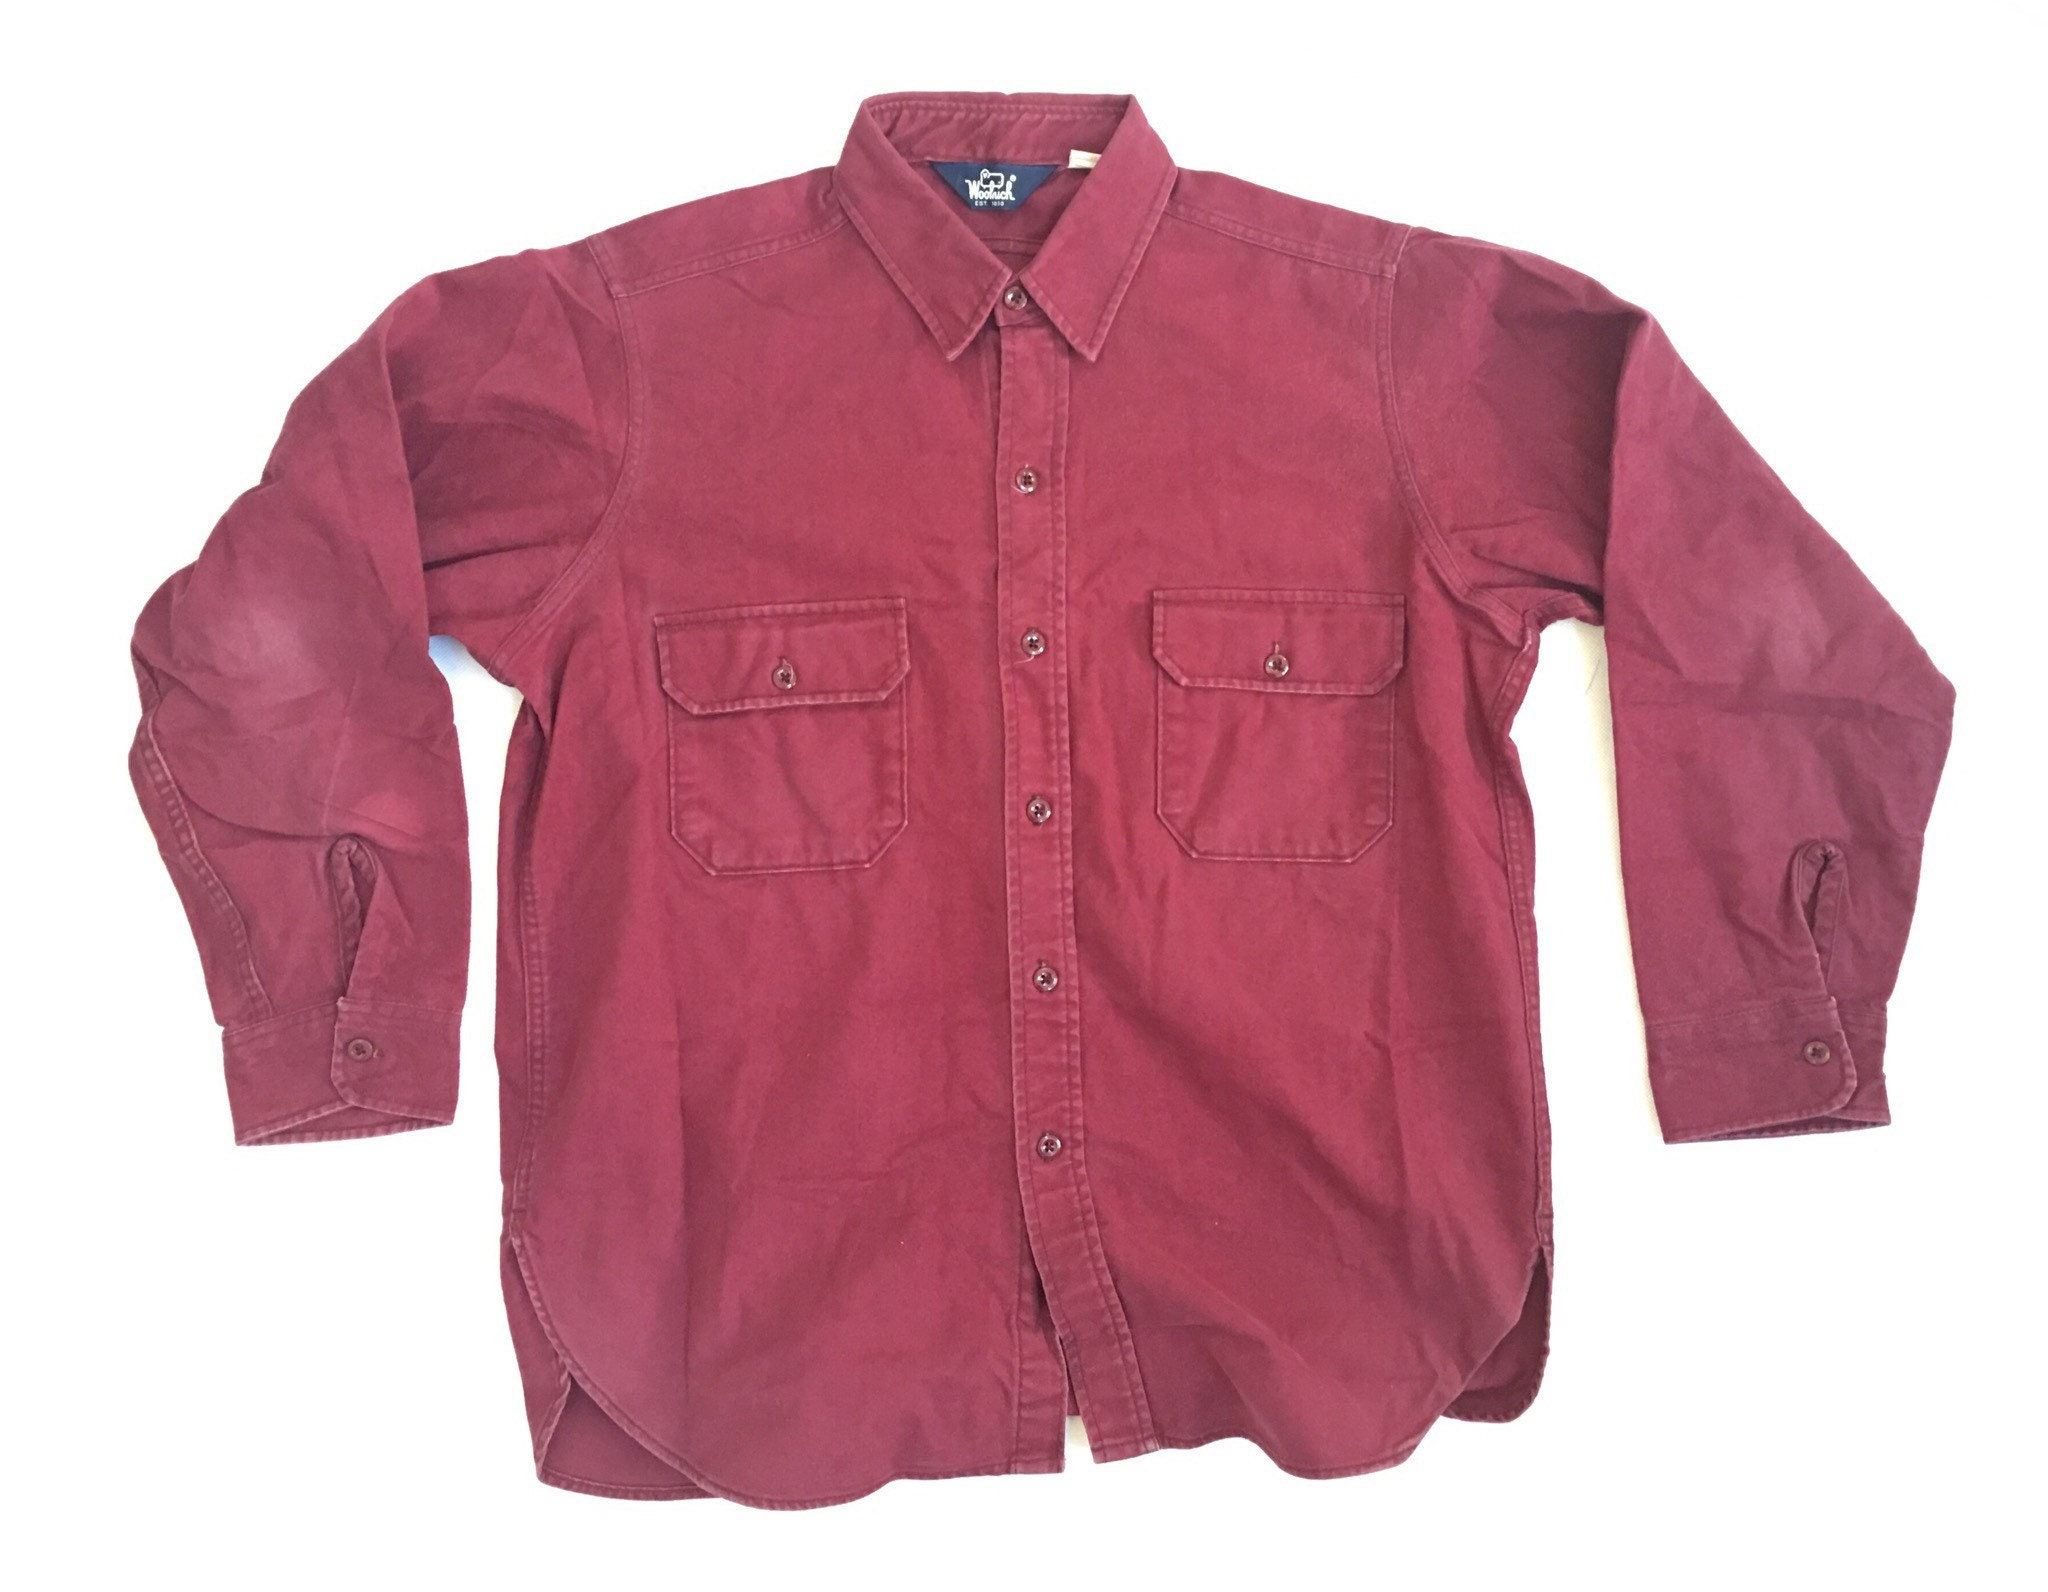 Cottonfield Shirts Uk – EDGE Engineering and Consulting Limited